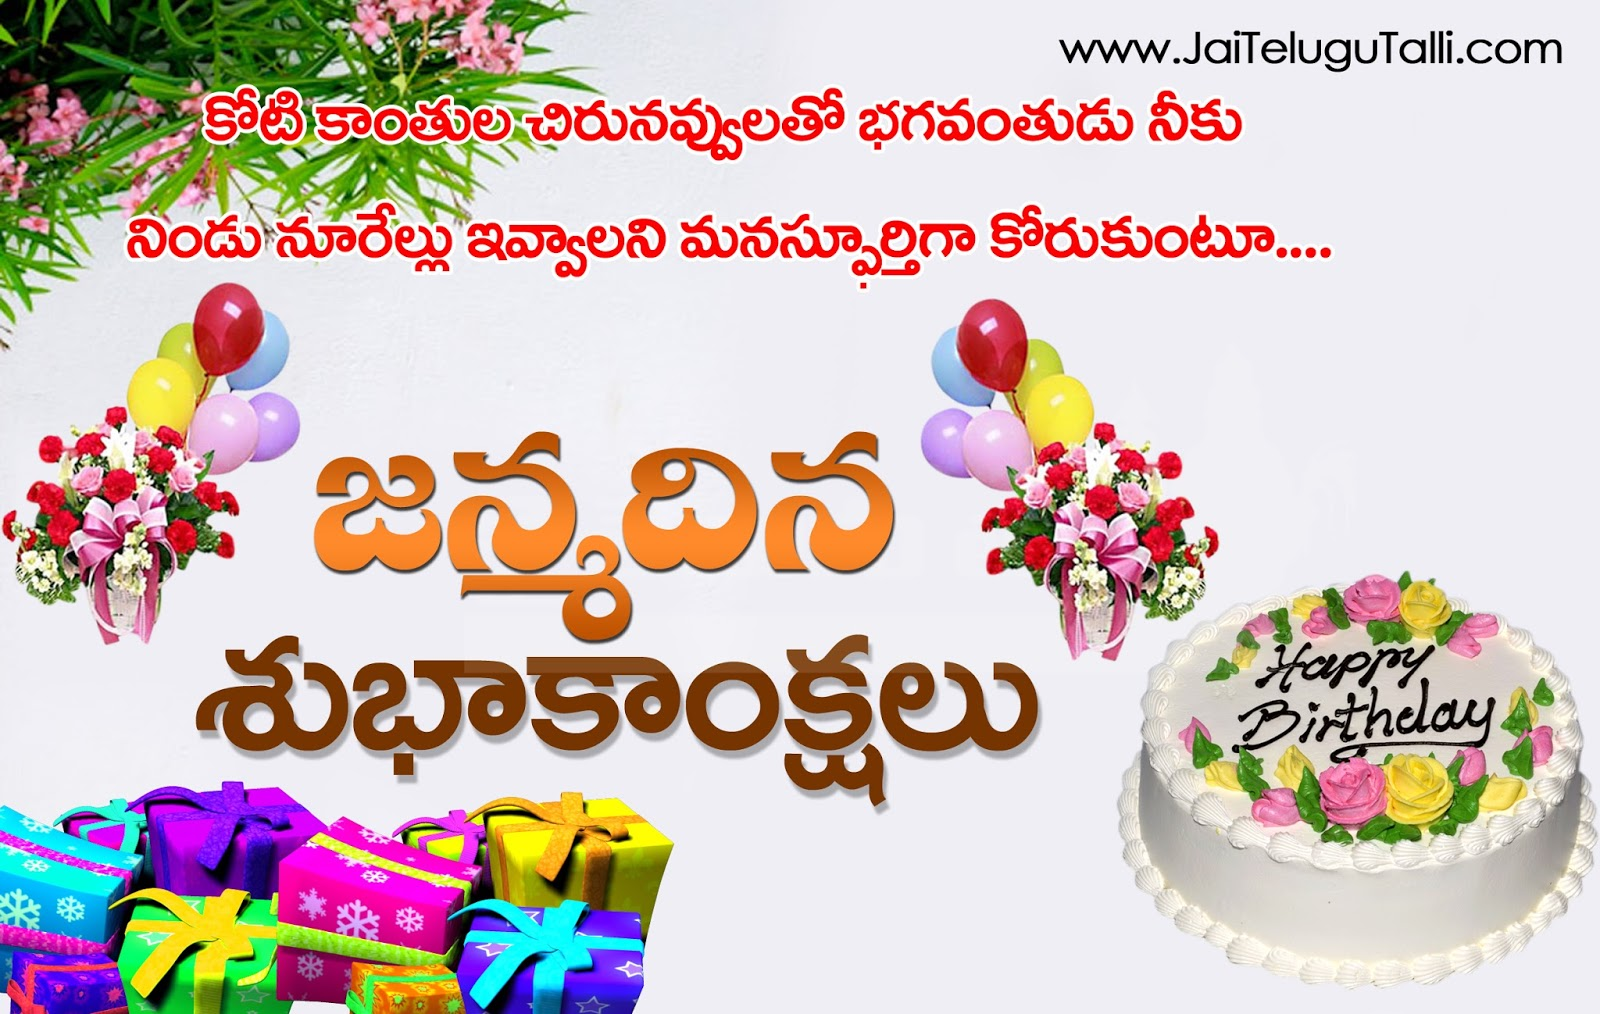 Happy Birthday Greetings And Wishes In Telugu Wallpapers How To Wish Happy Birthday In Telugu